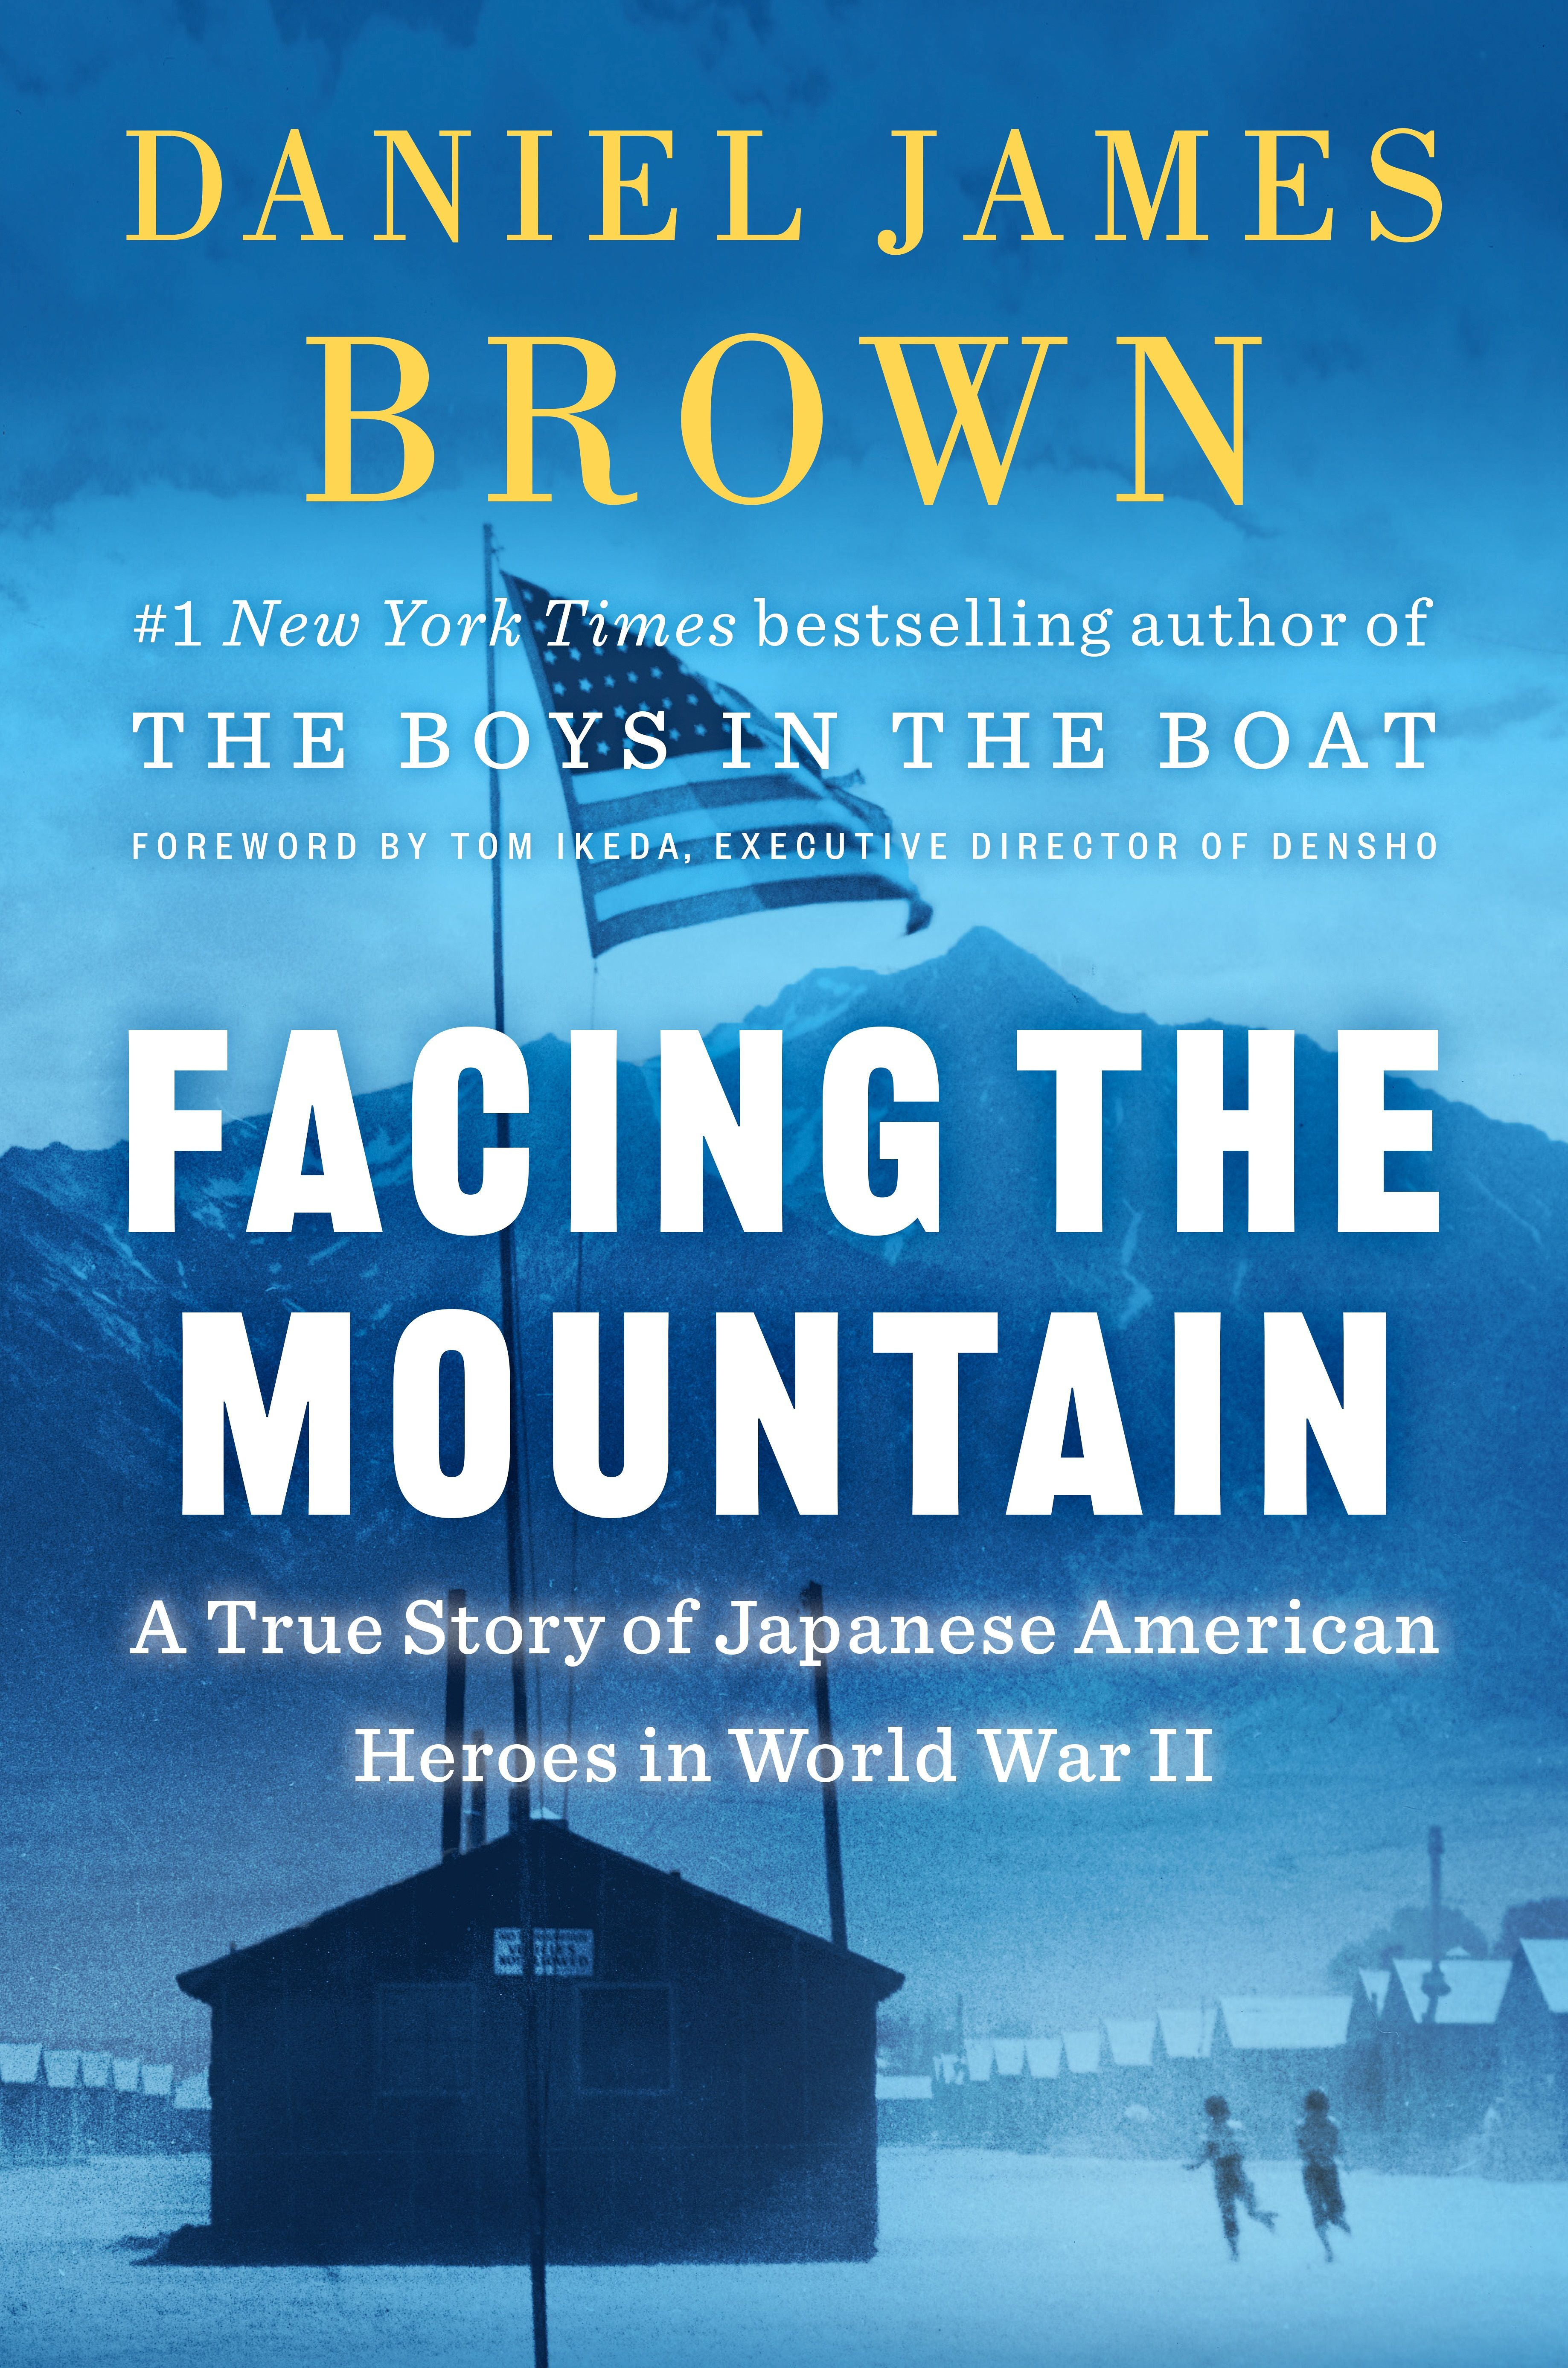 BPL presents-  Daniel James Brown — Facing the Mountain: A True Story of Japanese American Heroes in World War II